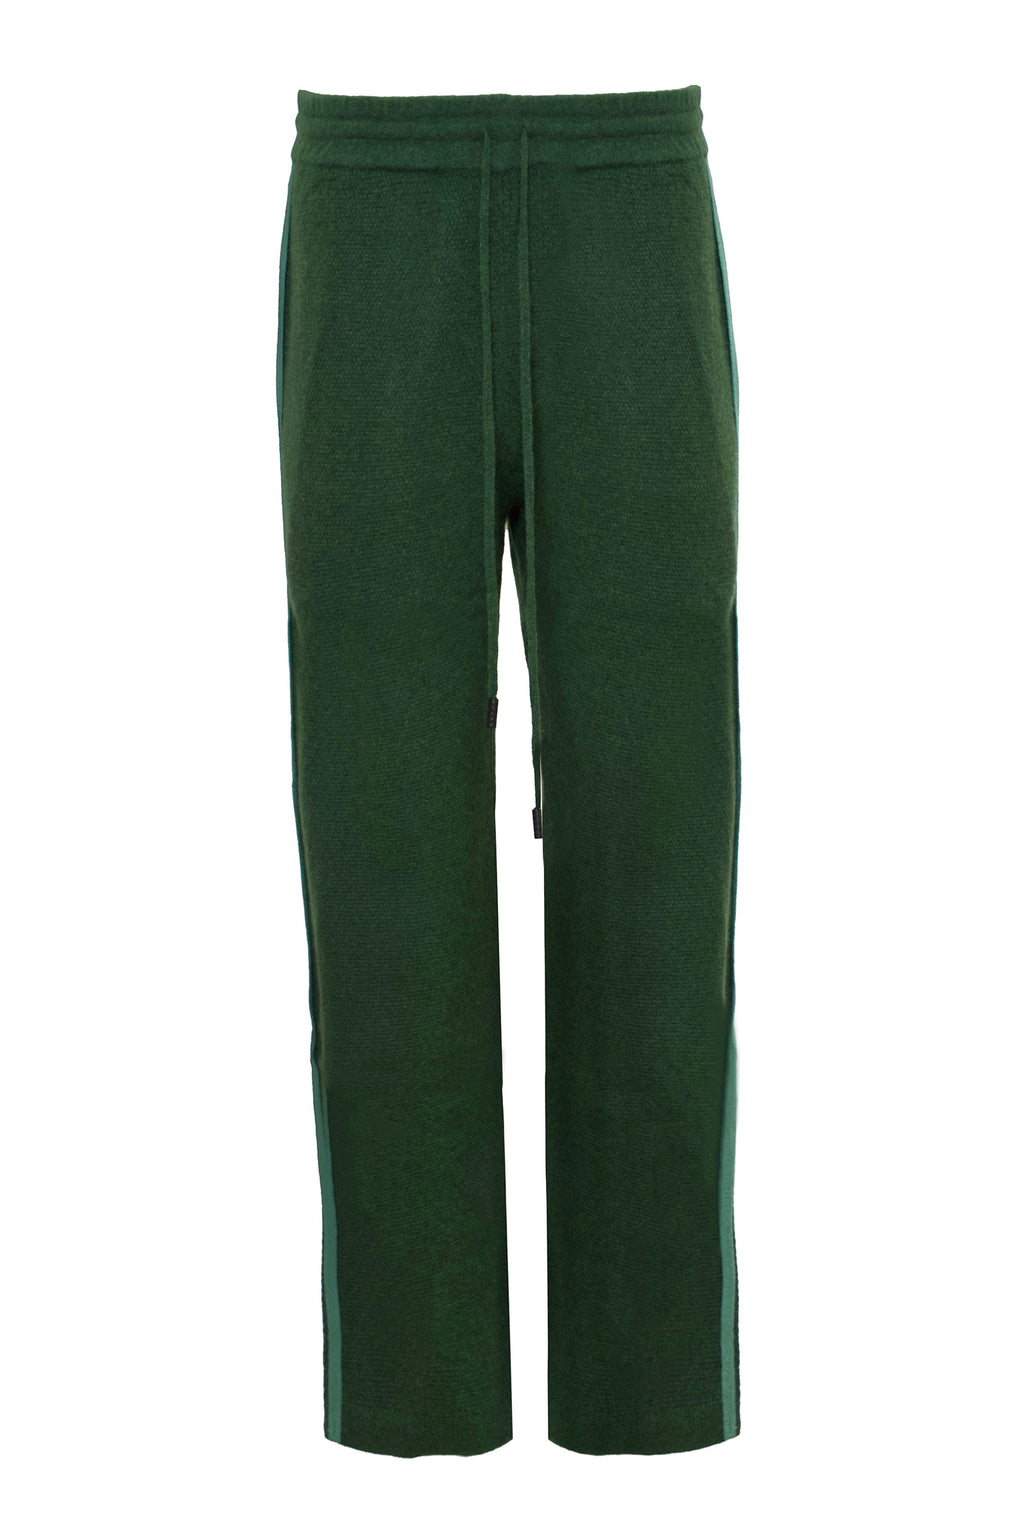 Sagecoin Cashmere Bottoms Green